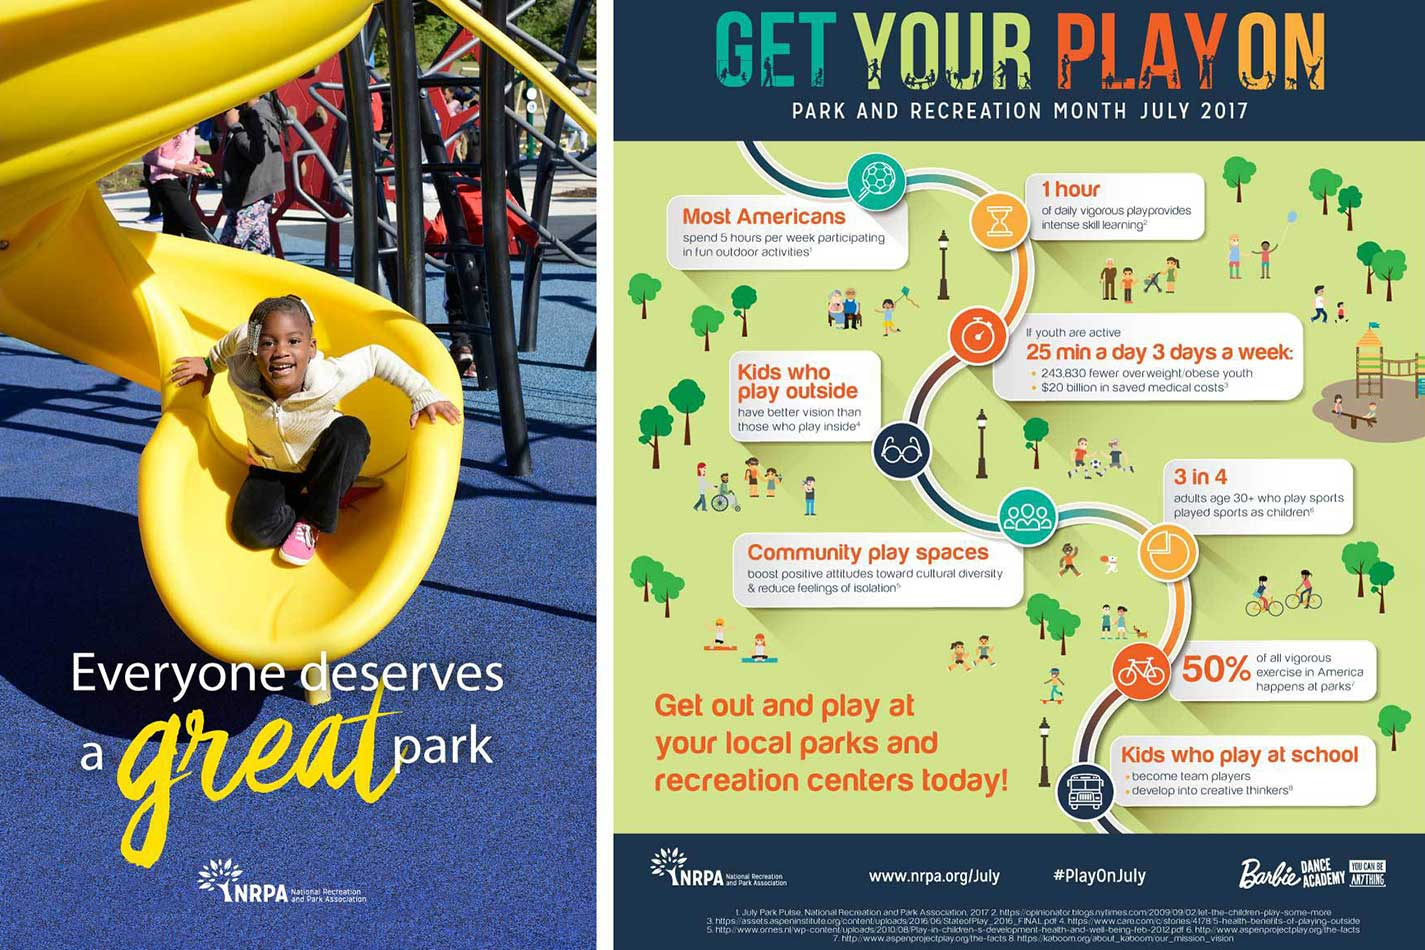 Meet Me At The Park Campaign - The National Recreation and Park Association (NRPA) - Brand Assets